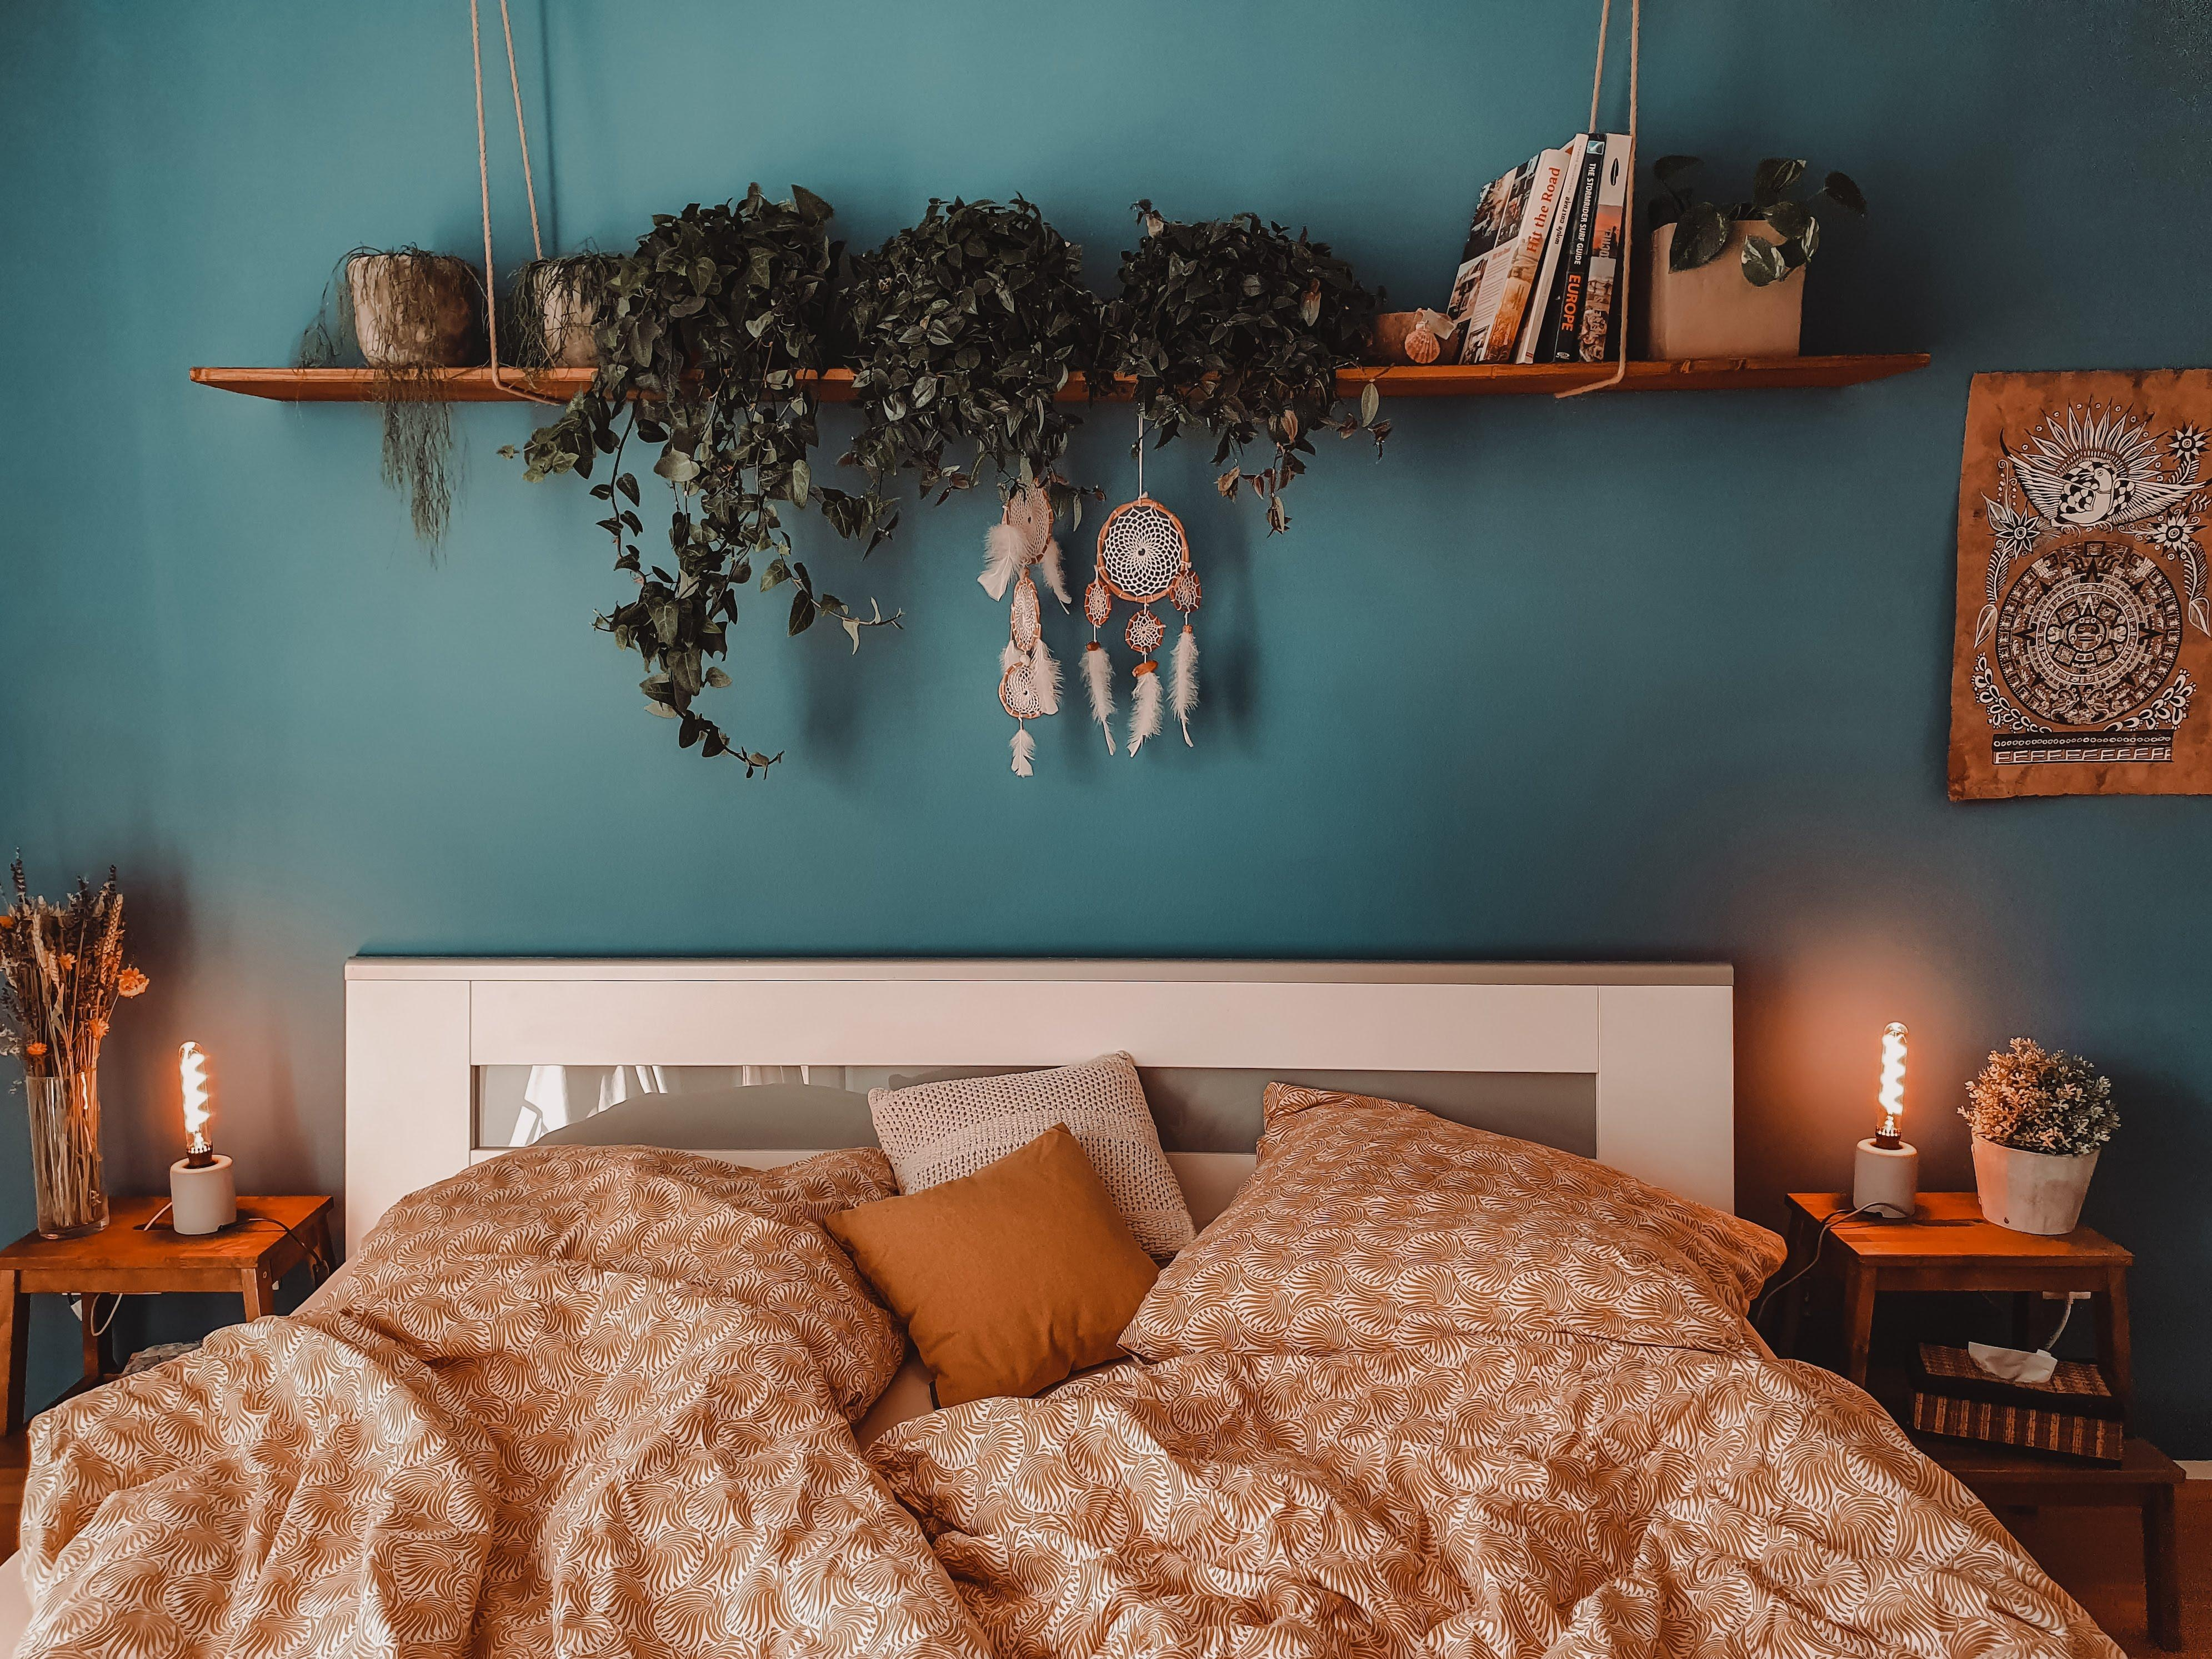 Mein hygge place to be cozyhomeshots bedroomgoals hygge  9dc1ba0a acf6 49b3 9166 9fedc0a0f9d4